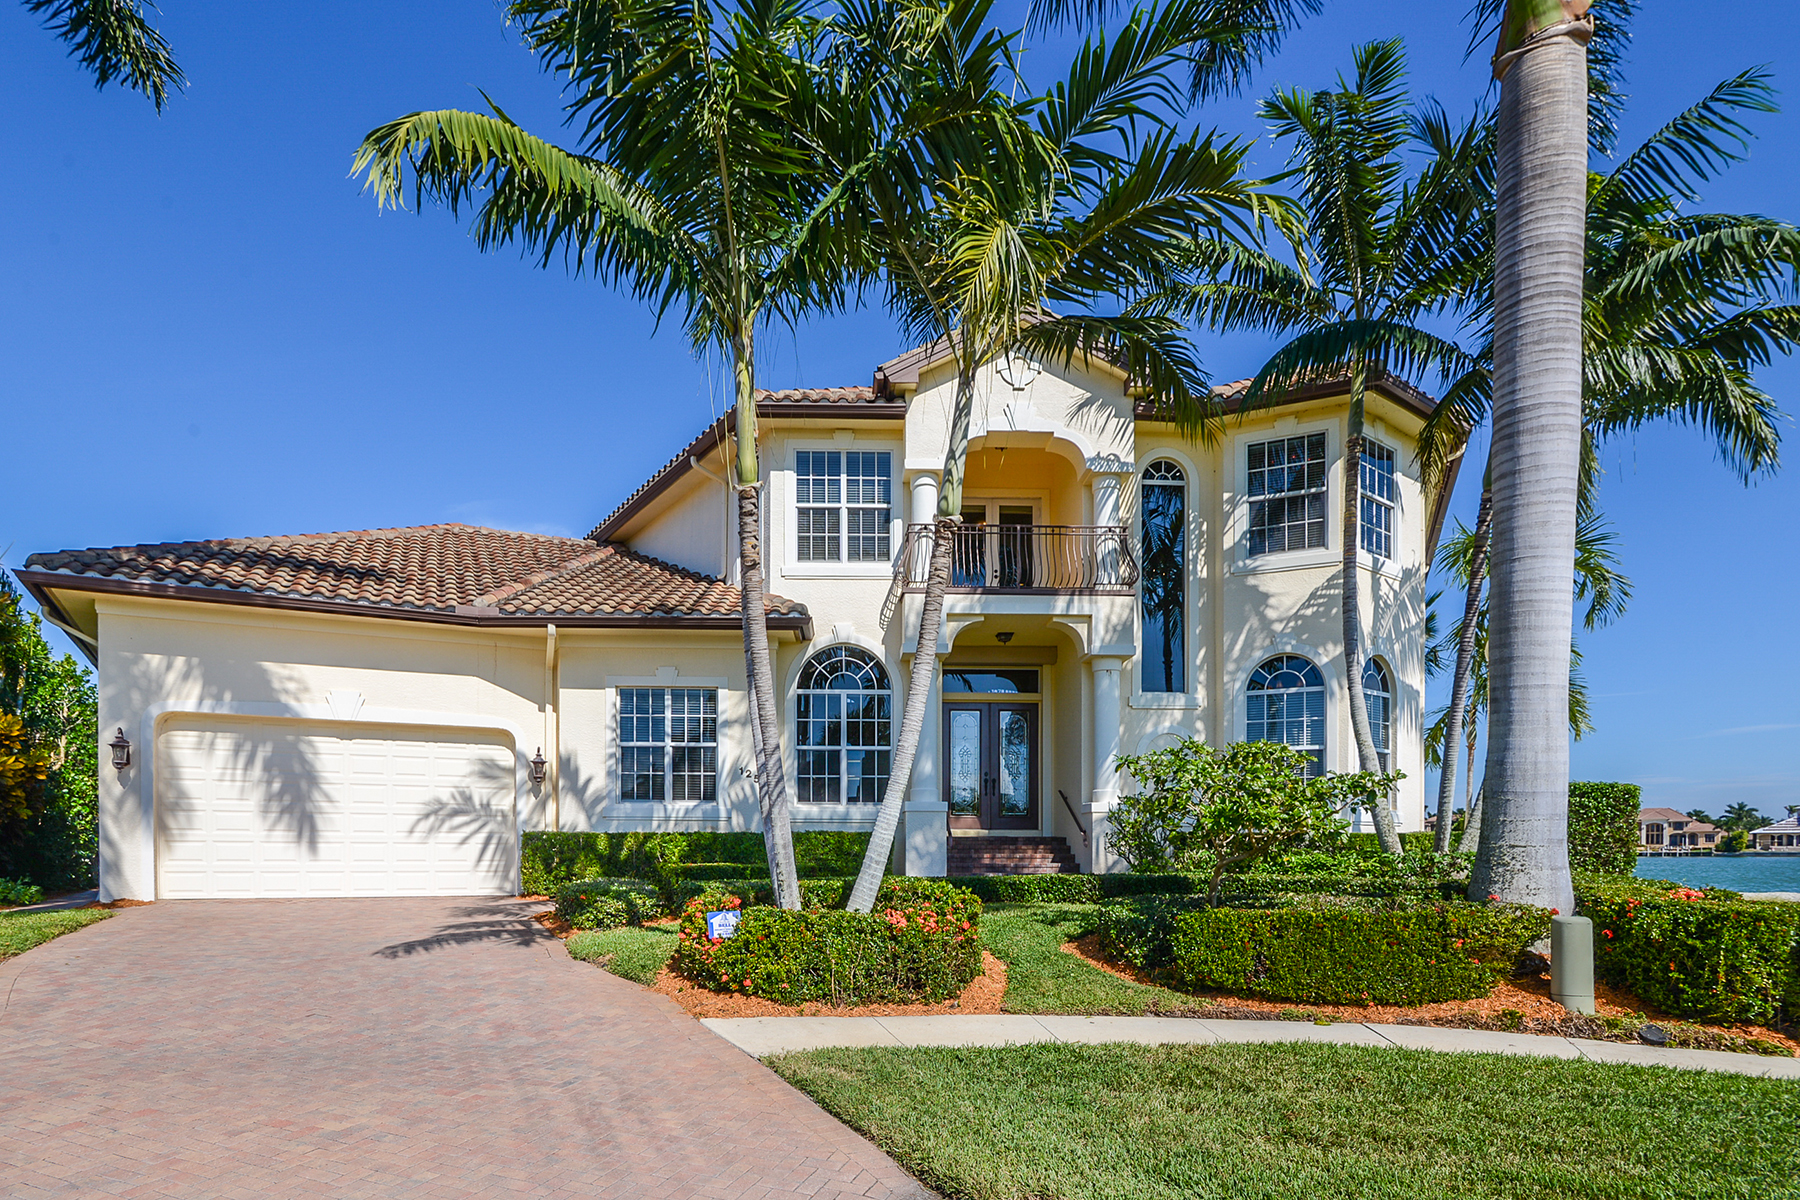 Single Family Home for Sale at MARCO ISLAND - MARLIN COURT 1251 Marlin Ct Marco Island, Florida 34145 United States